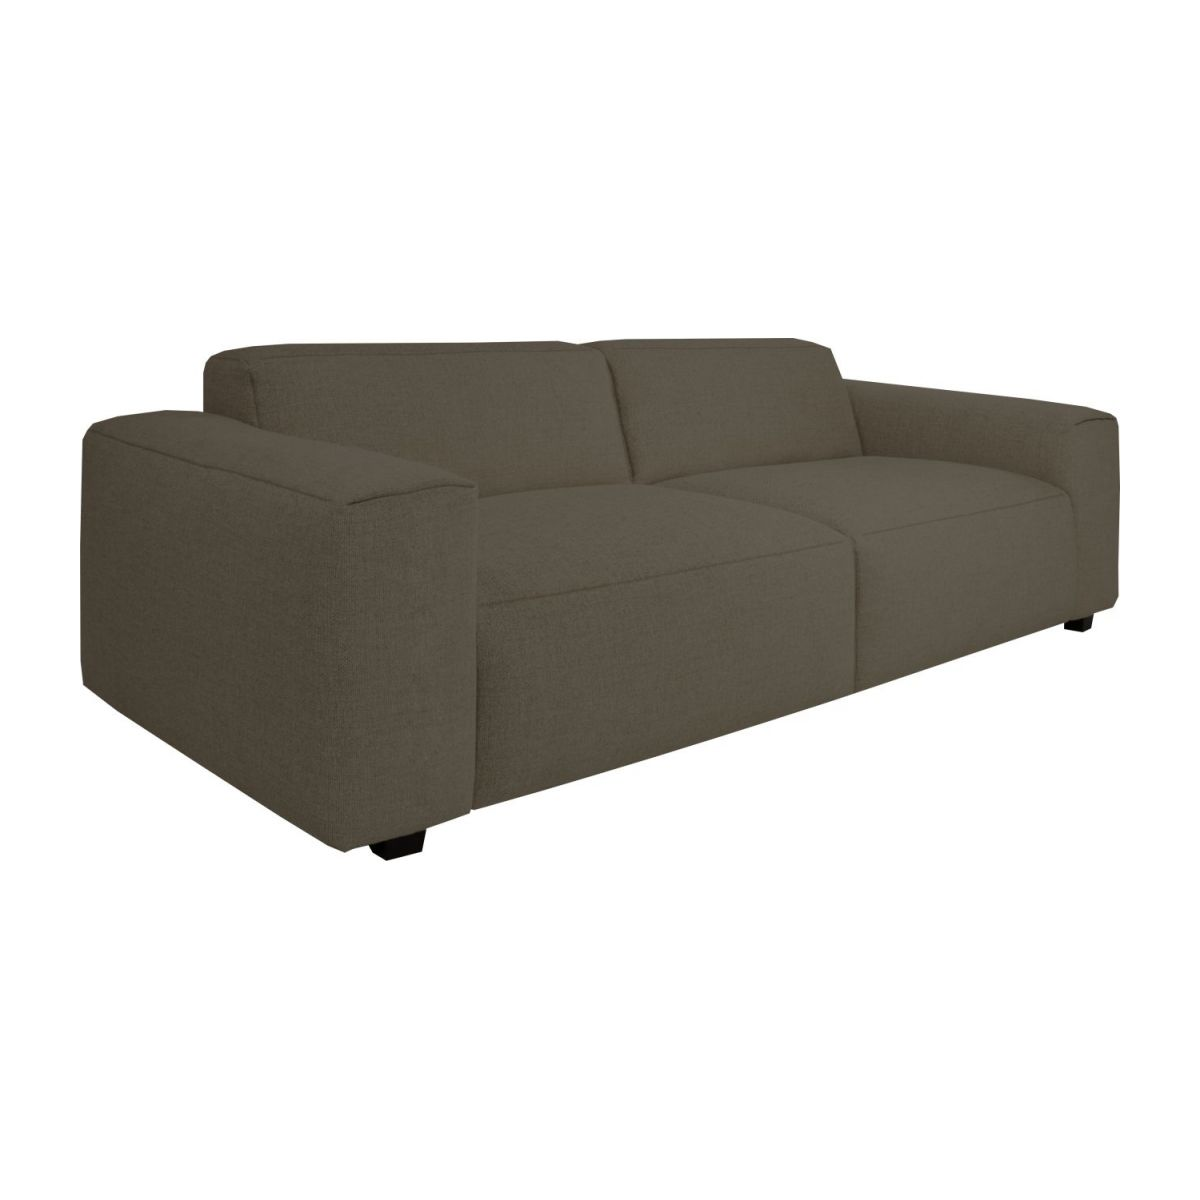 3 seater sofa in Lecce fabric, muscat n°1